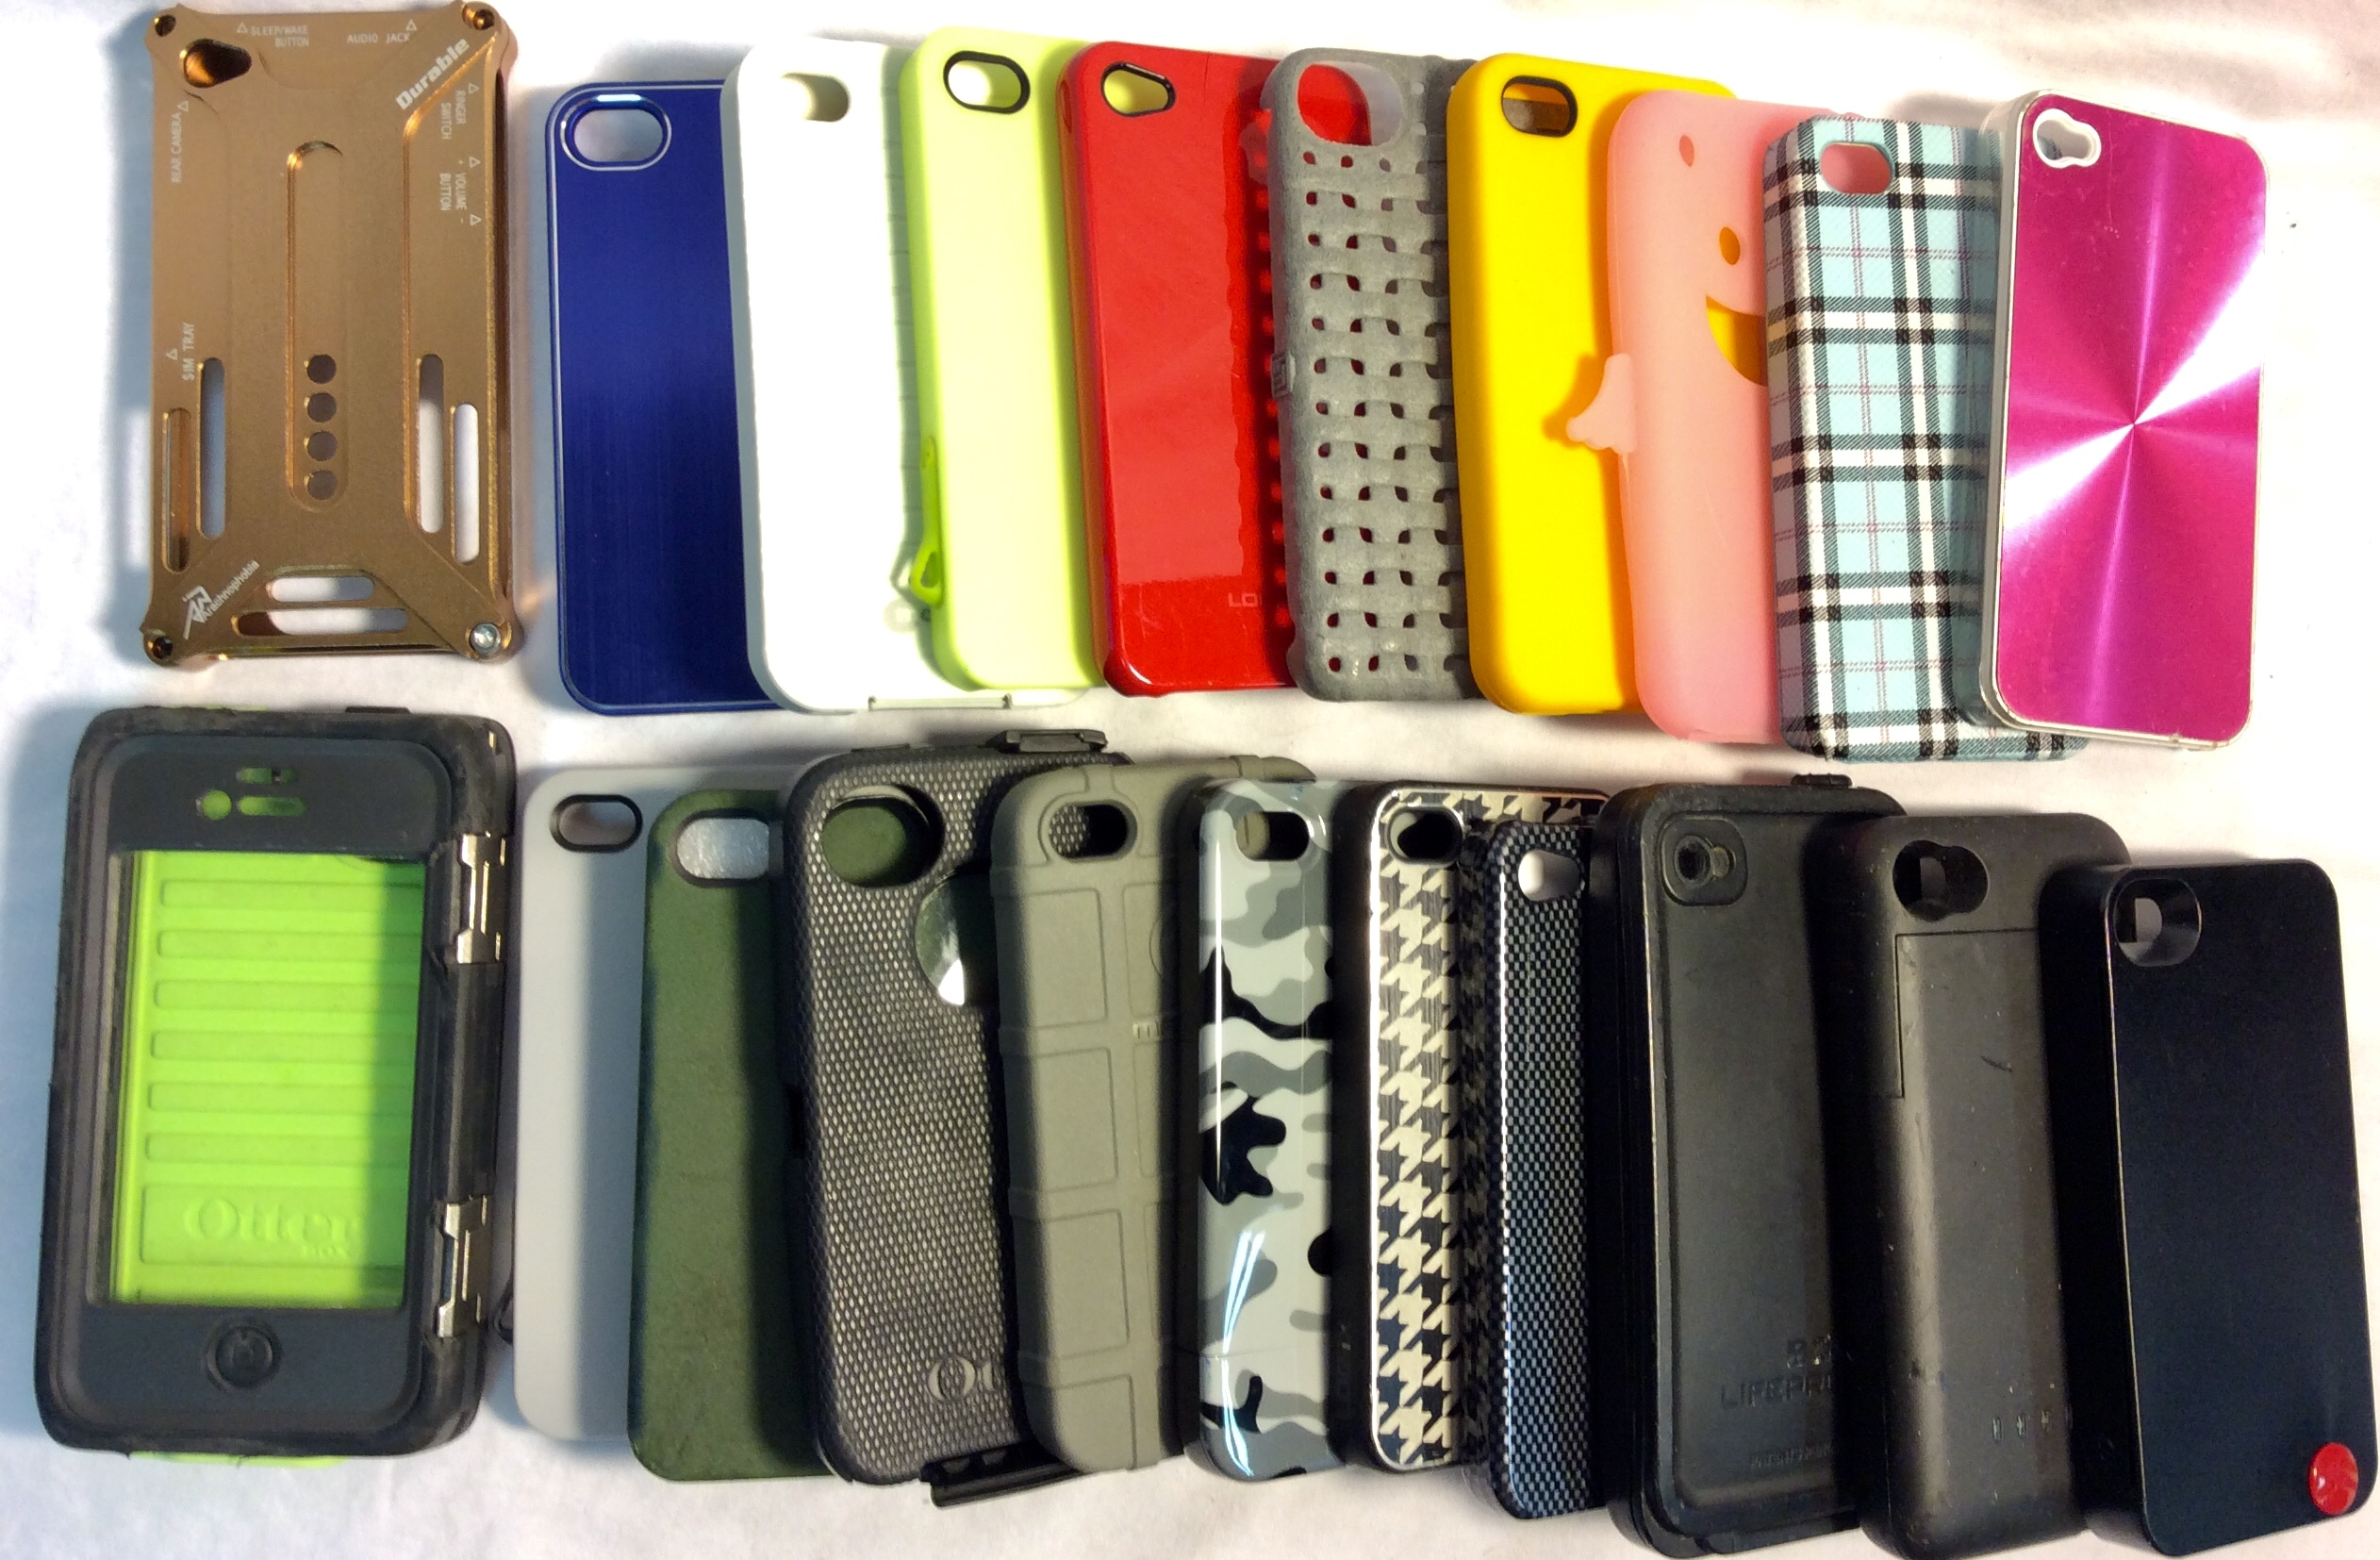 Assorted iPhone 4 cases